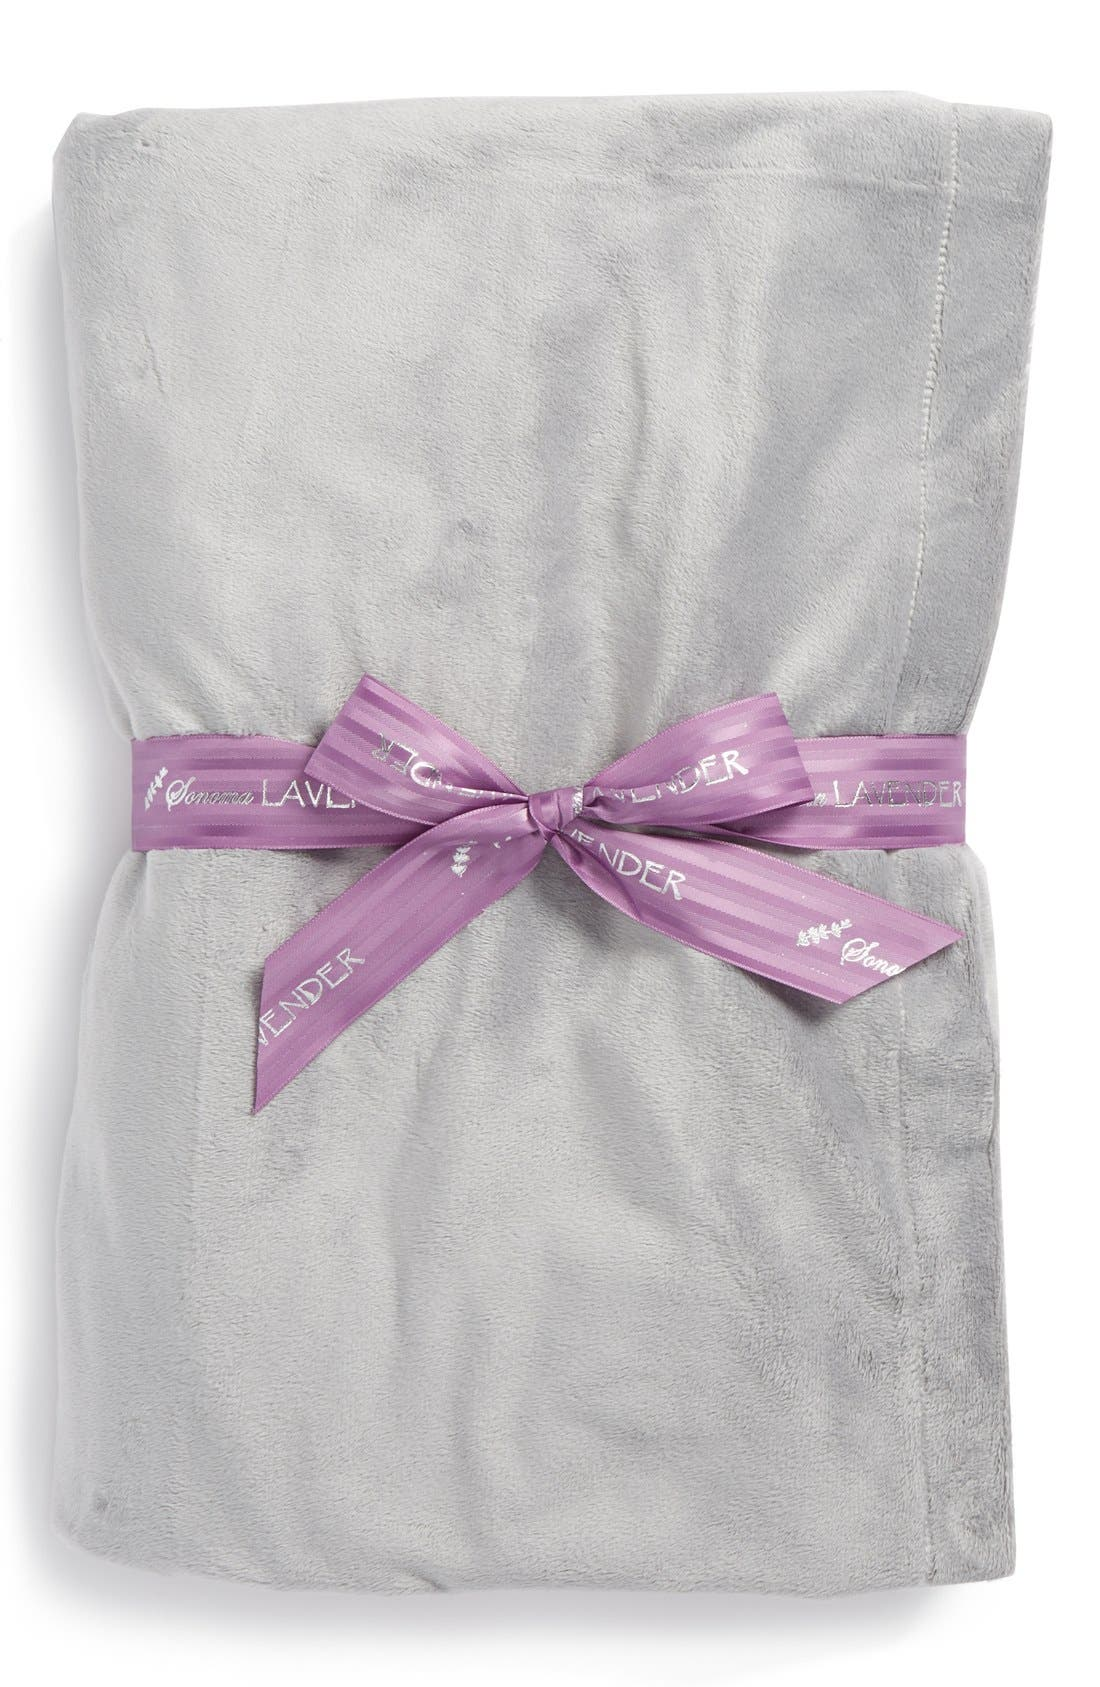 Sonoma Lavender Solid Silver Blankie (Nordstrom Exclusive)